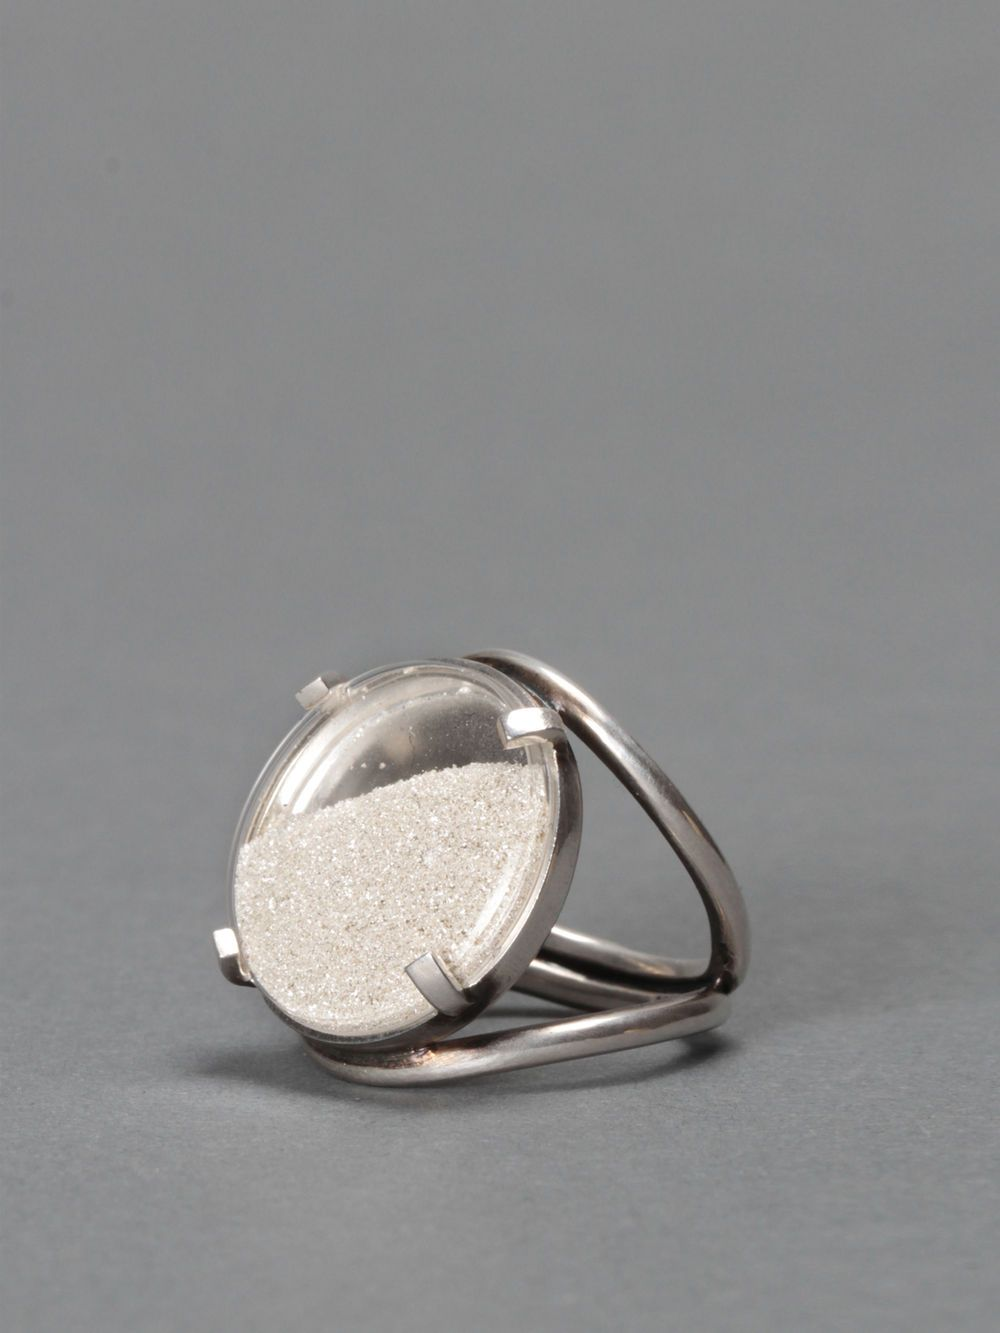 Ann Demeulemeester, sterling silver ring with glass and silver powder